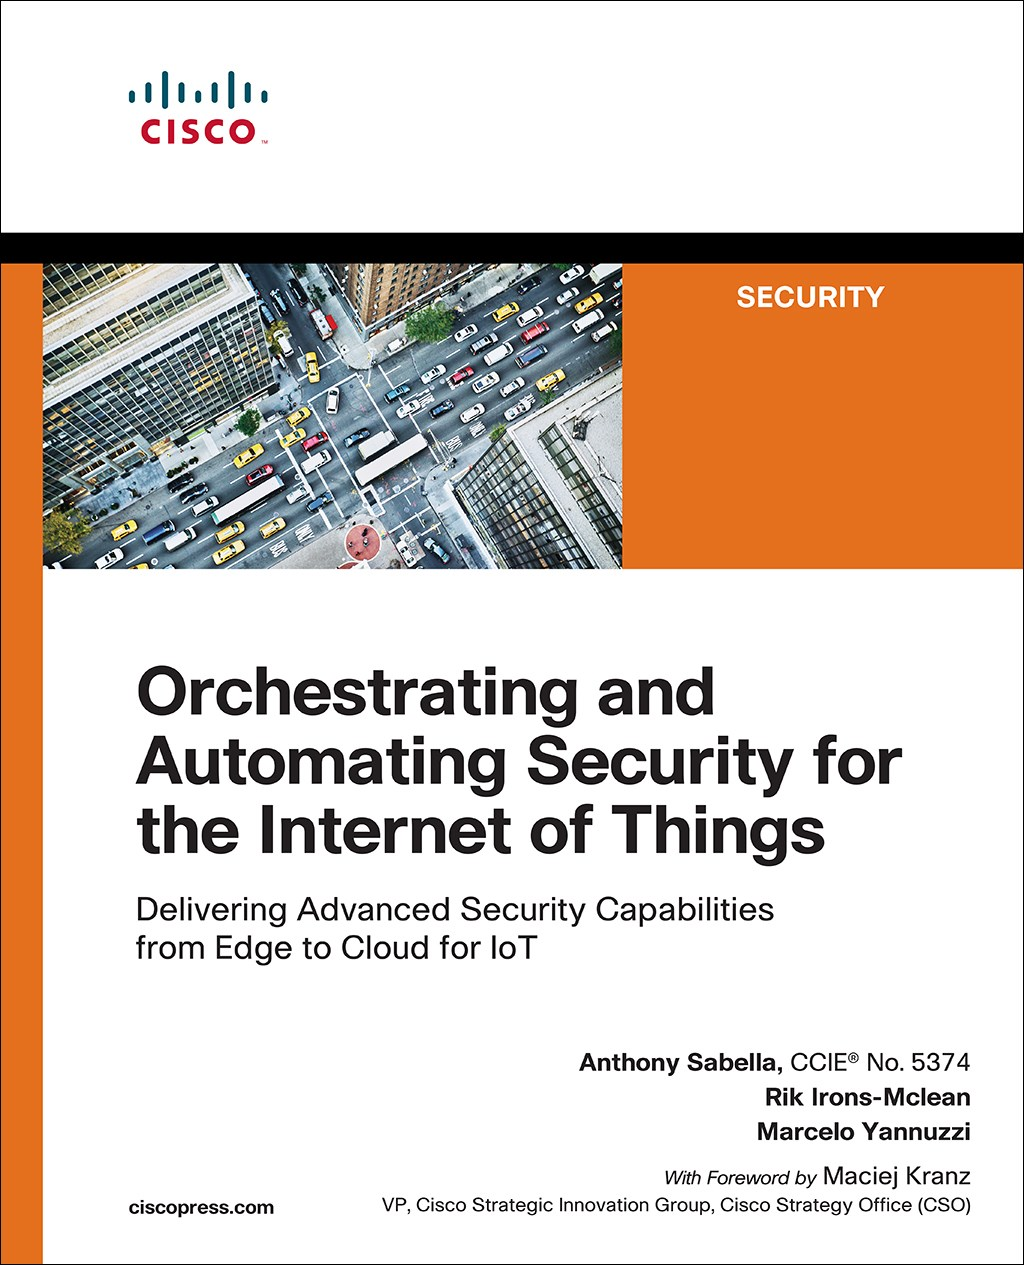 Orchestrating and Automating Security for the Internet of Things: Delivering Advanced Security Capabilities from Edge to Cloud for IoT